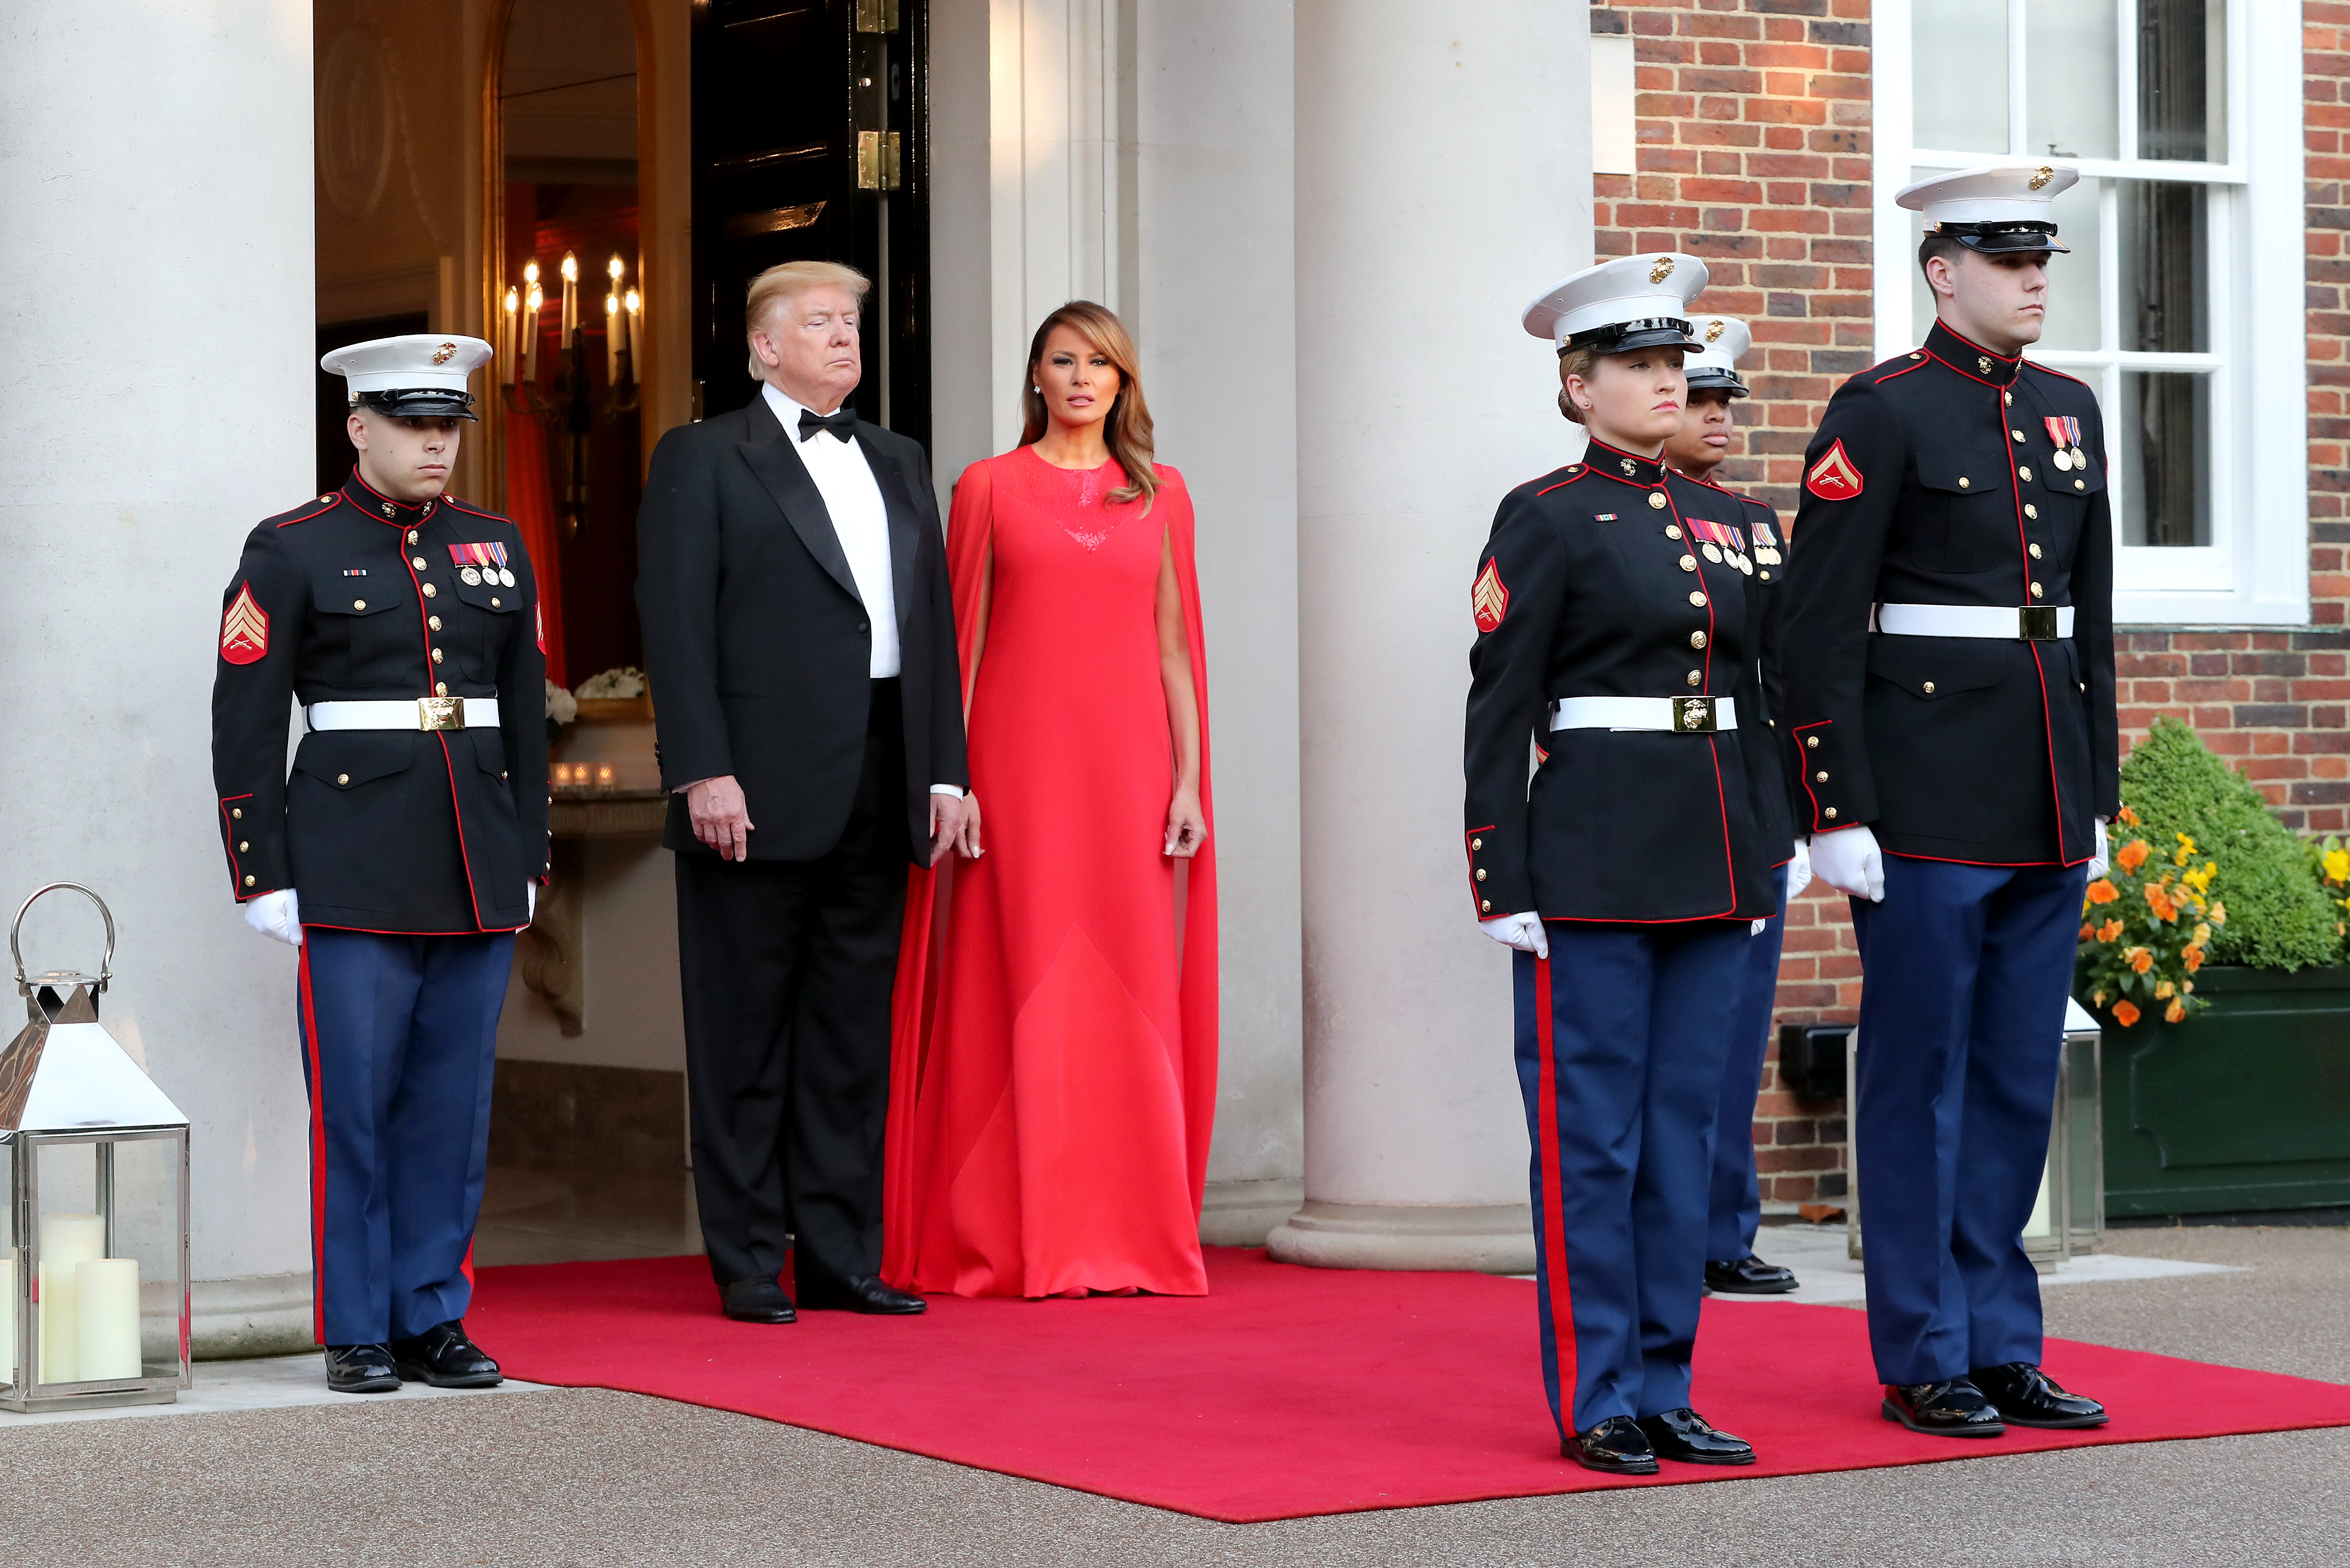 President Trump and first lady Melania Trump pose ahead of a dinner at Winfield House for Prince Charles, Prince of Wales, and Camilla, Duchess of Cornwall, during their state visit on June 4, 2019 in London, England.